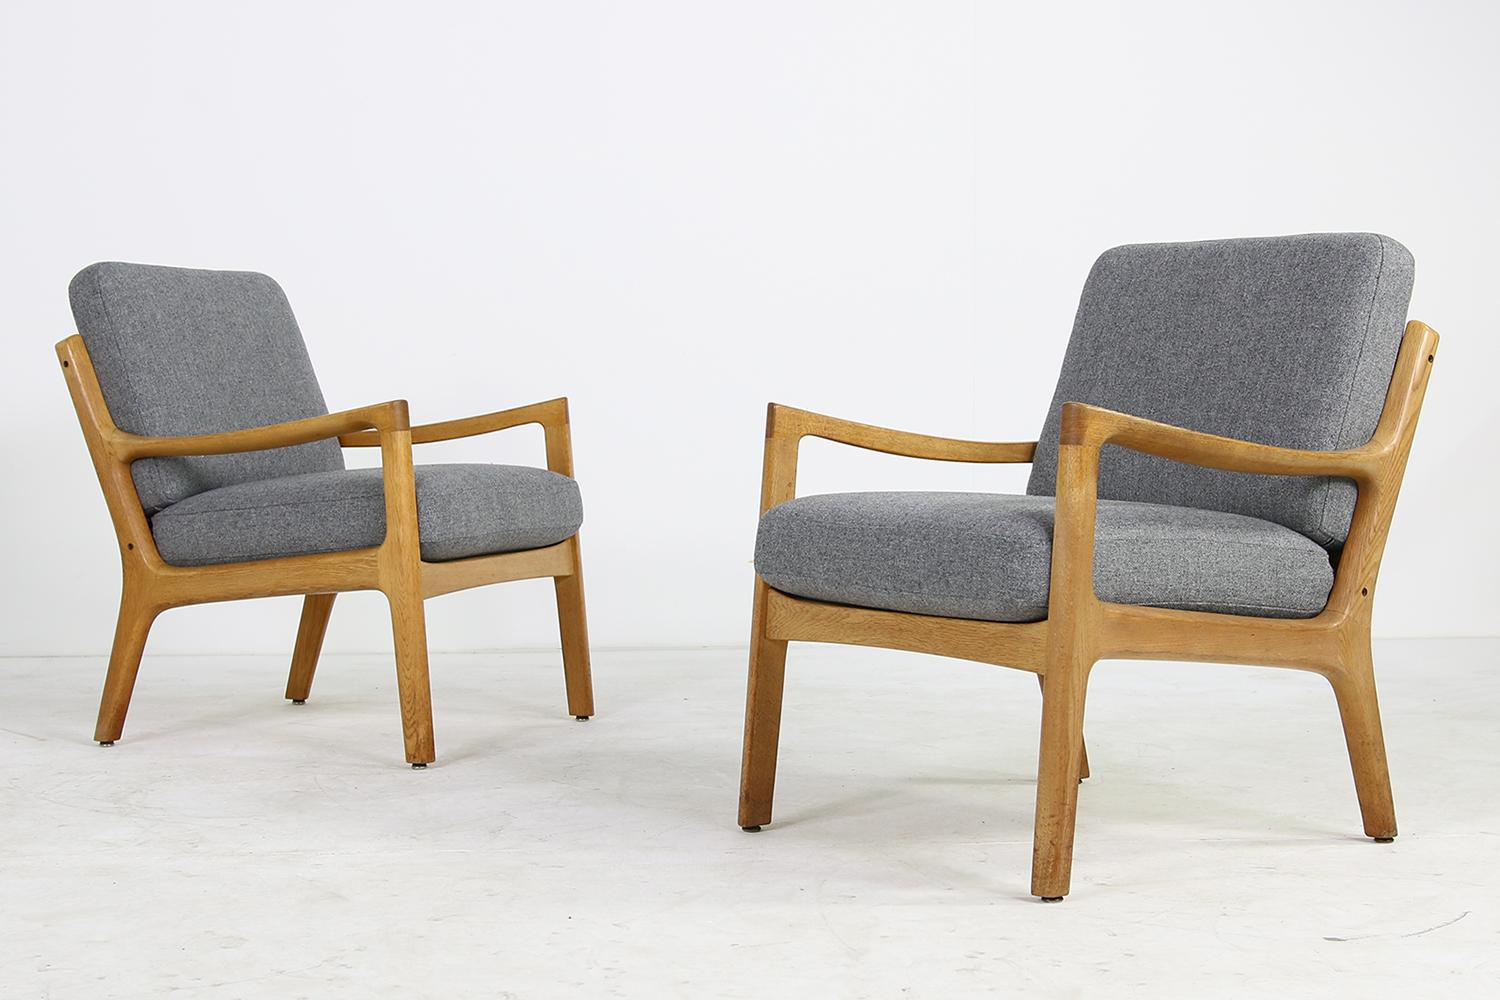 Ole Wanscher Sessel Pair Of 1960s Ole Wanscher Oak Lounge Chairs New Upholstery In Grey Danish